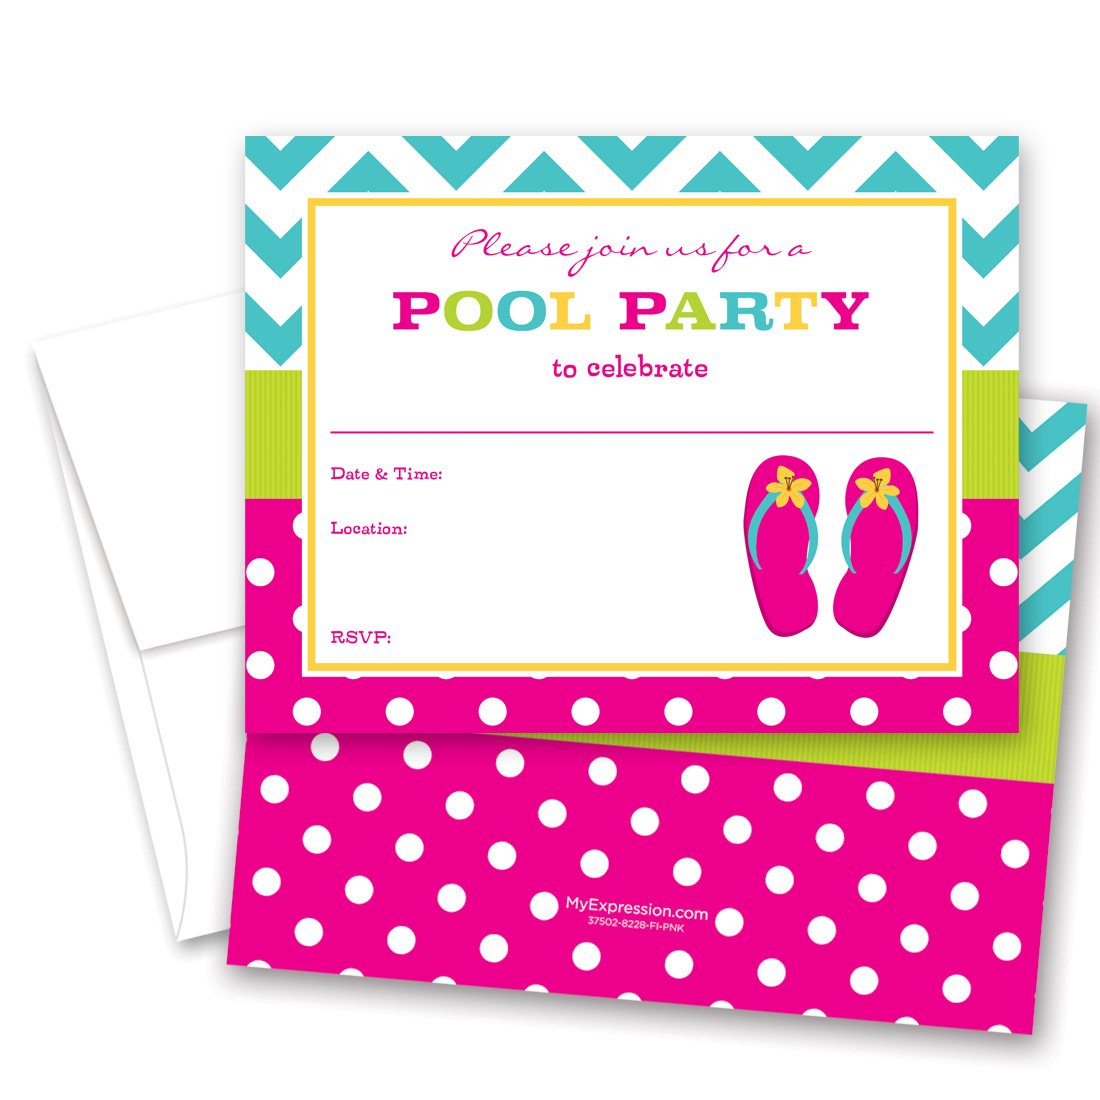 24 Fill-in Girl Flip Flops Pool Party Invitations by MyExpression.com